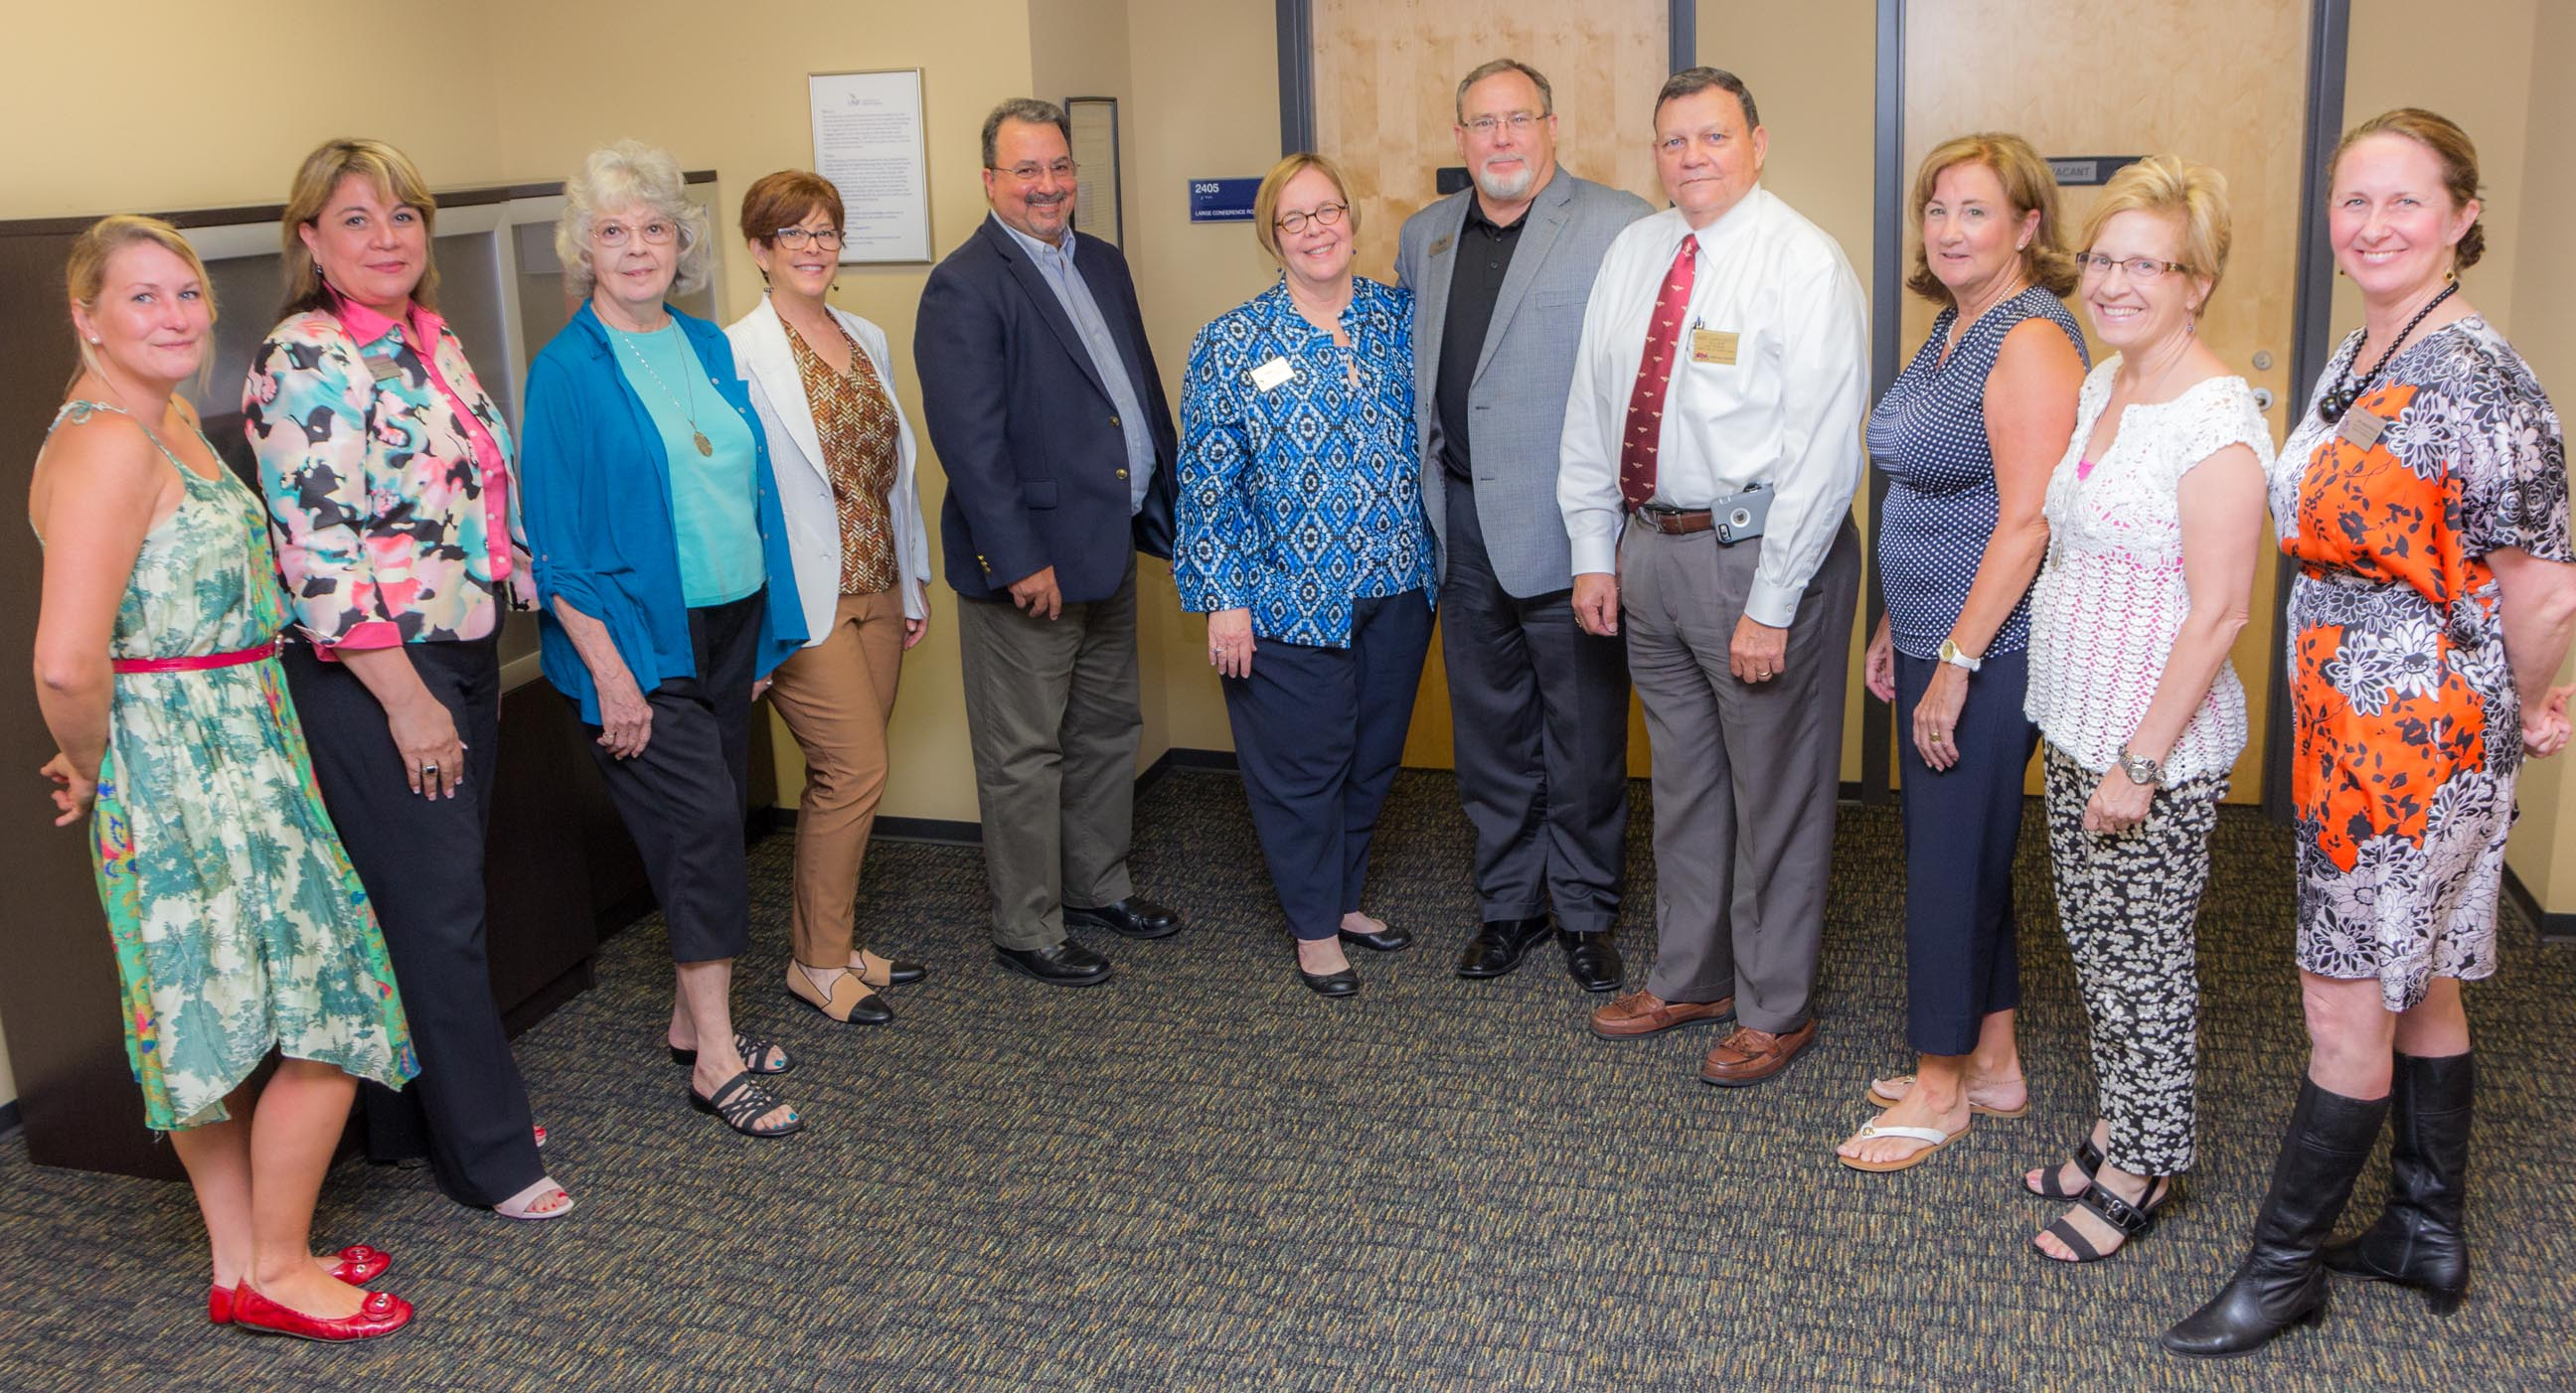 Members of the UNF Library Dean's Council: Leigh-Ann Sullivan, Dr. Lisandra Carmichael, Evelyn McDonald, Sharon Goldman, Frank Vastola, Dr. Elizabeth Curry, John Irvin, Andre Boutte, Phyllis Andruszkiewicz, Jennifer Wolfe & Jen Murray